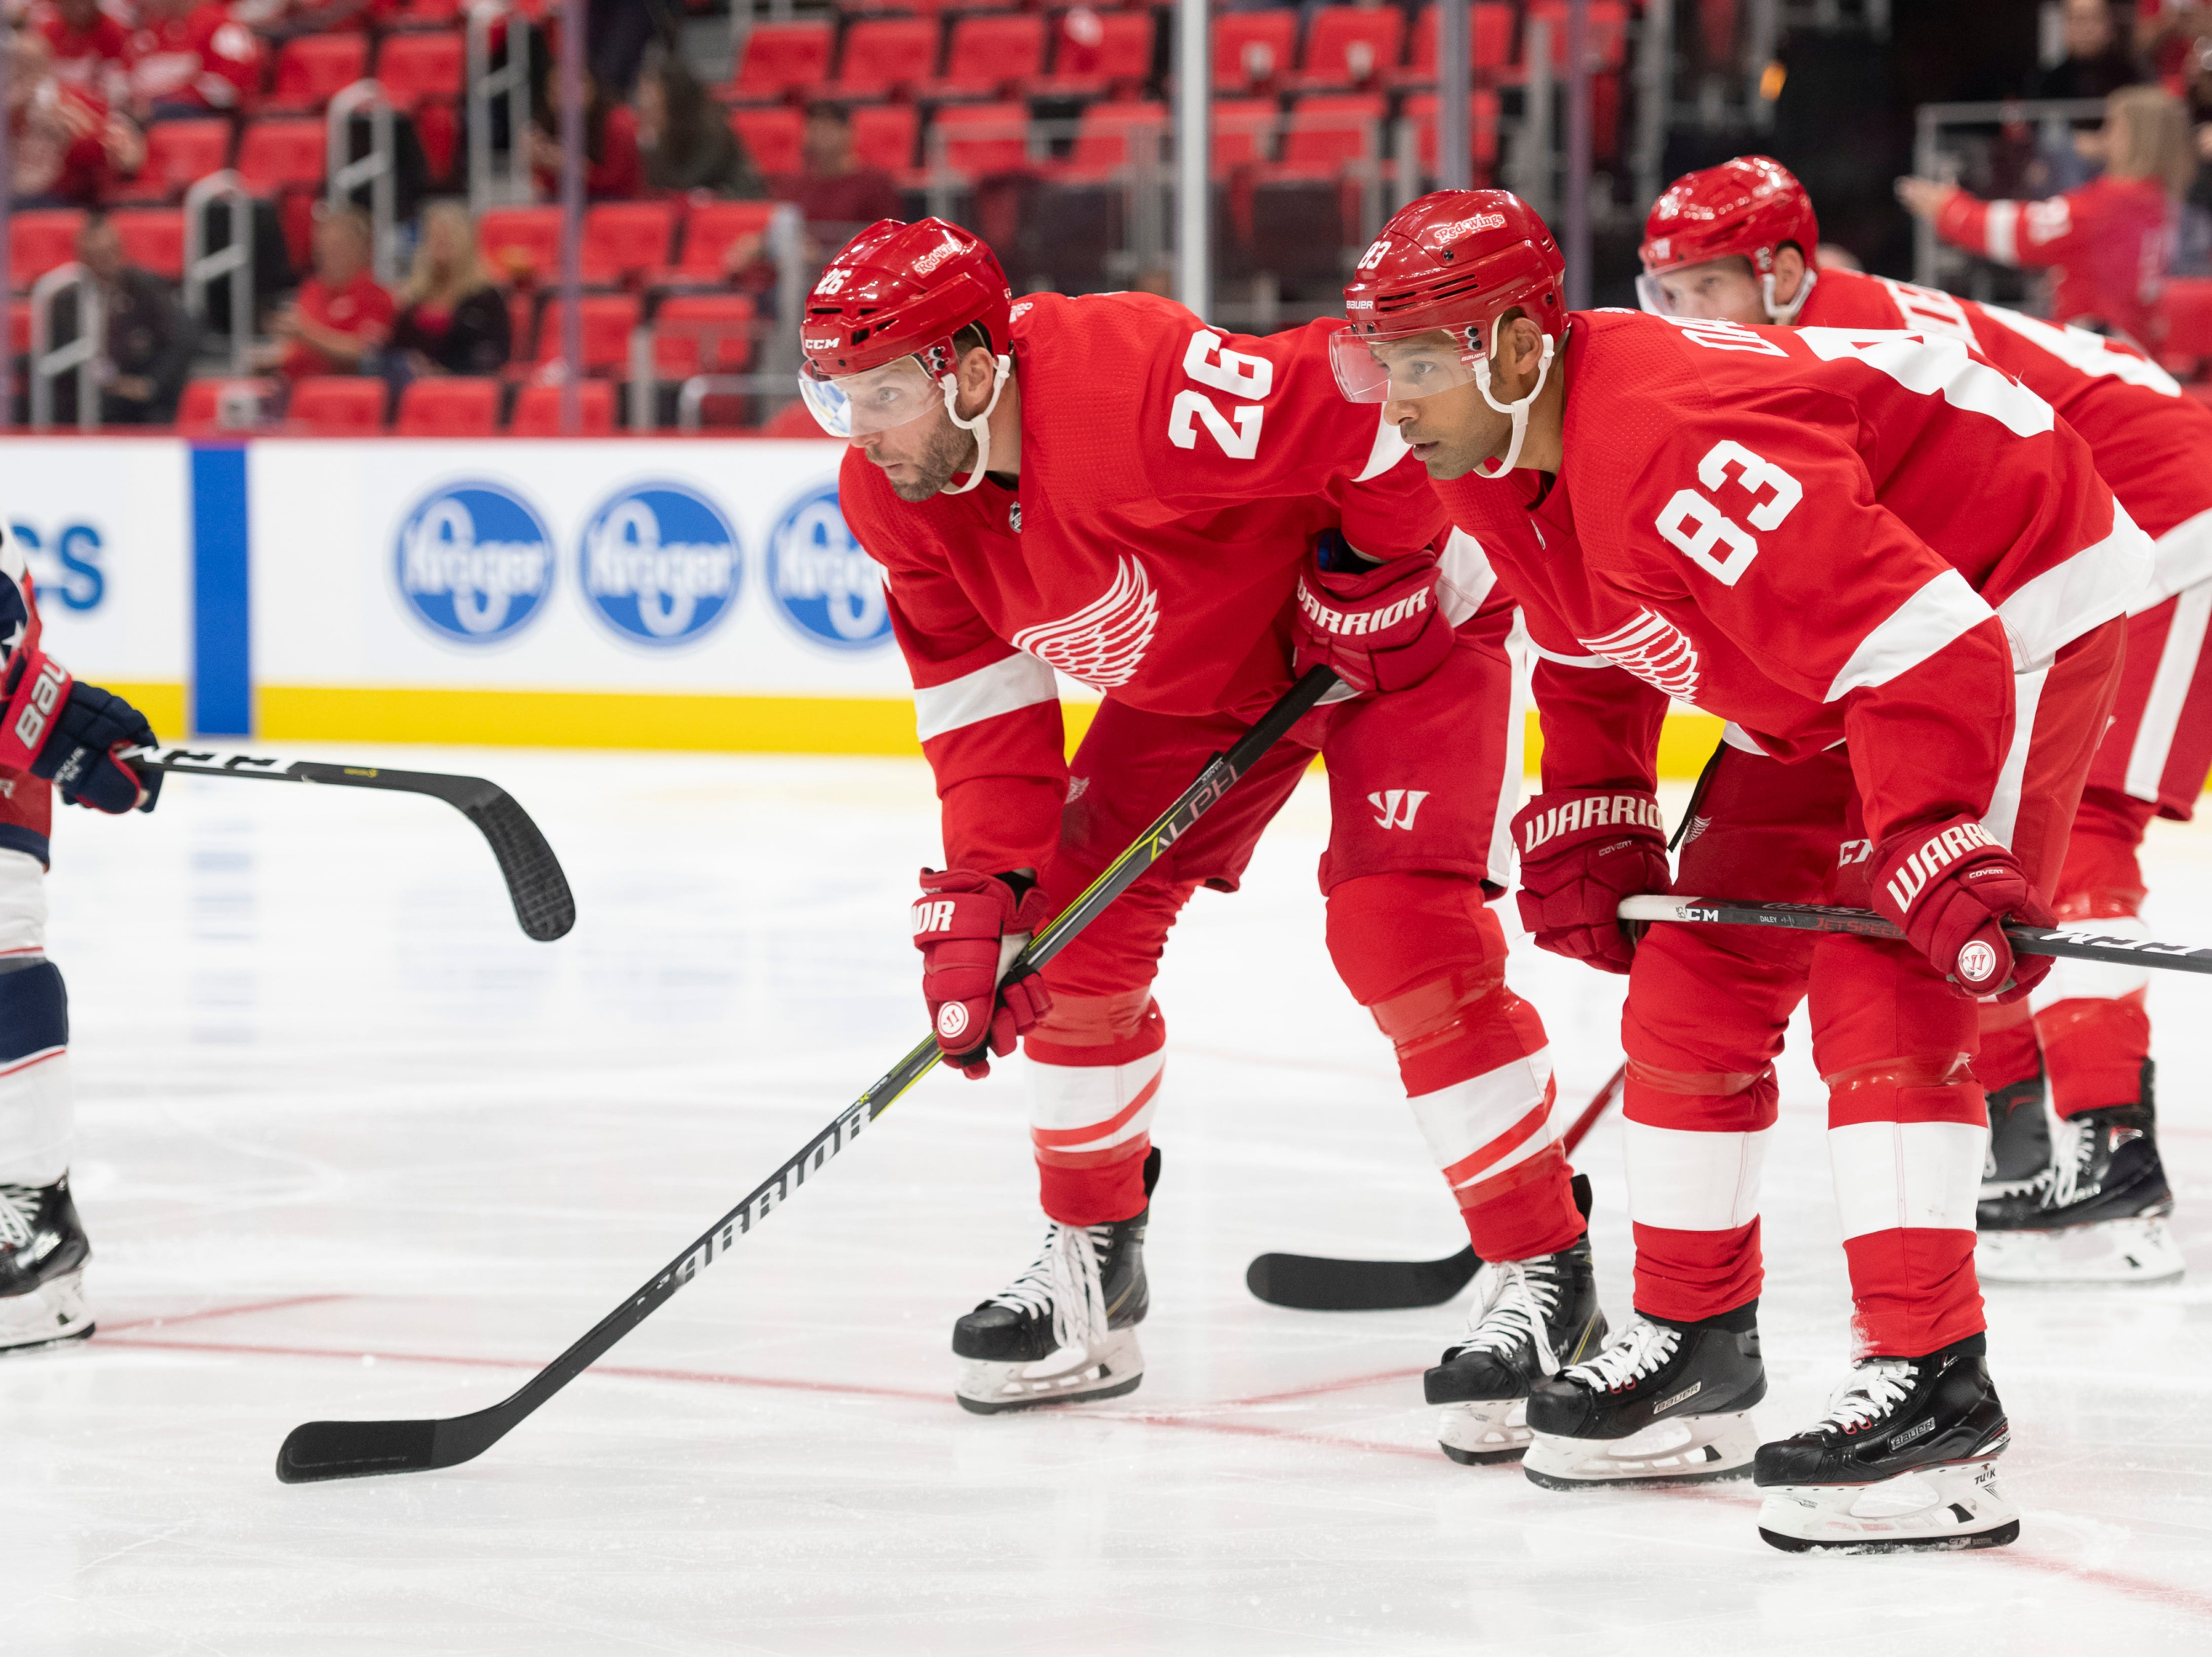 Detroit left wing Thomas Vanek, left, and defenseman Trevor Daley.               Photos are of the Detroit Red Wings vs. the Columbus Blue Jackets, at Little Caesars Arena, in Detroit, October 4, 2018.  (David Guralnick / The Detroit News)